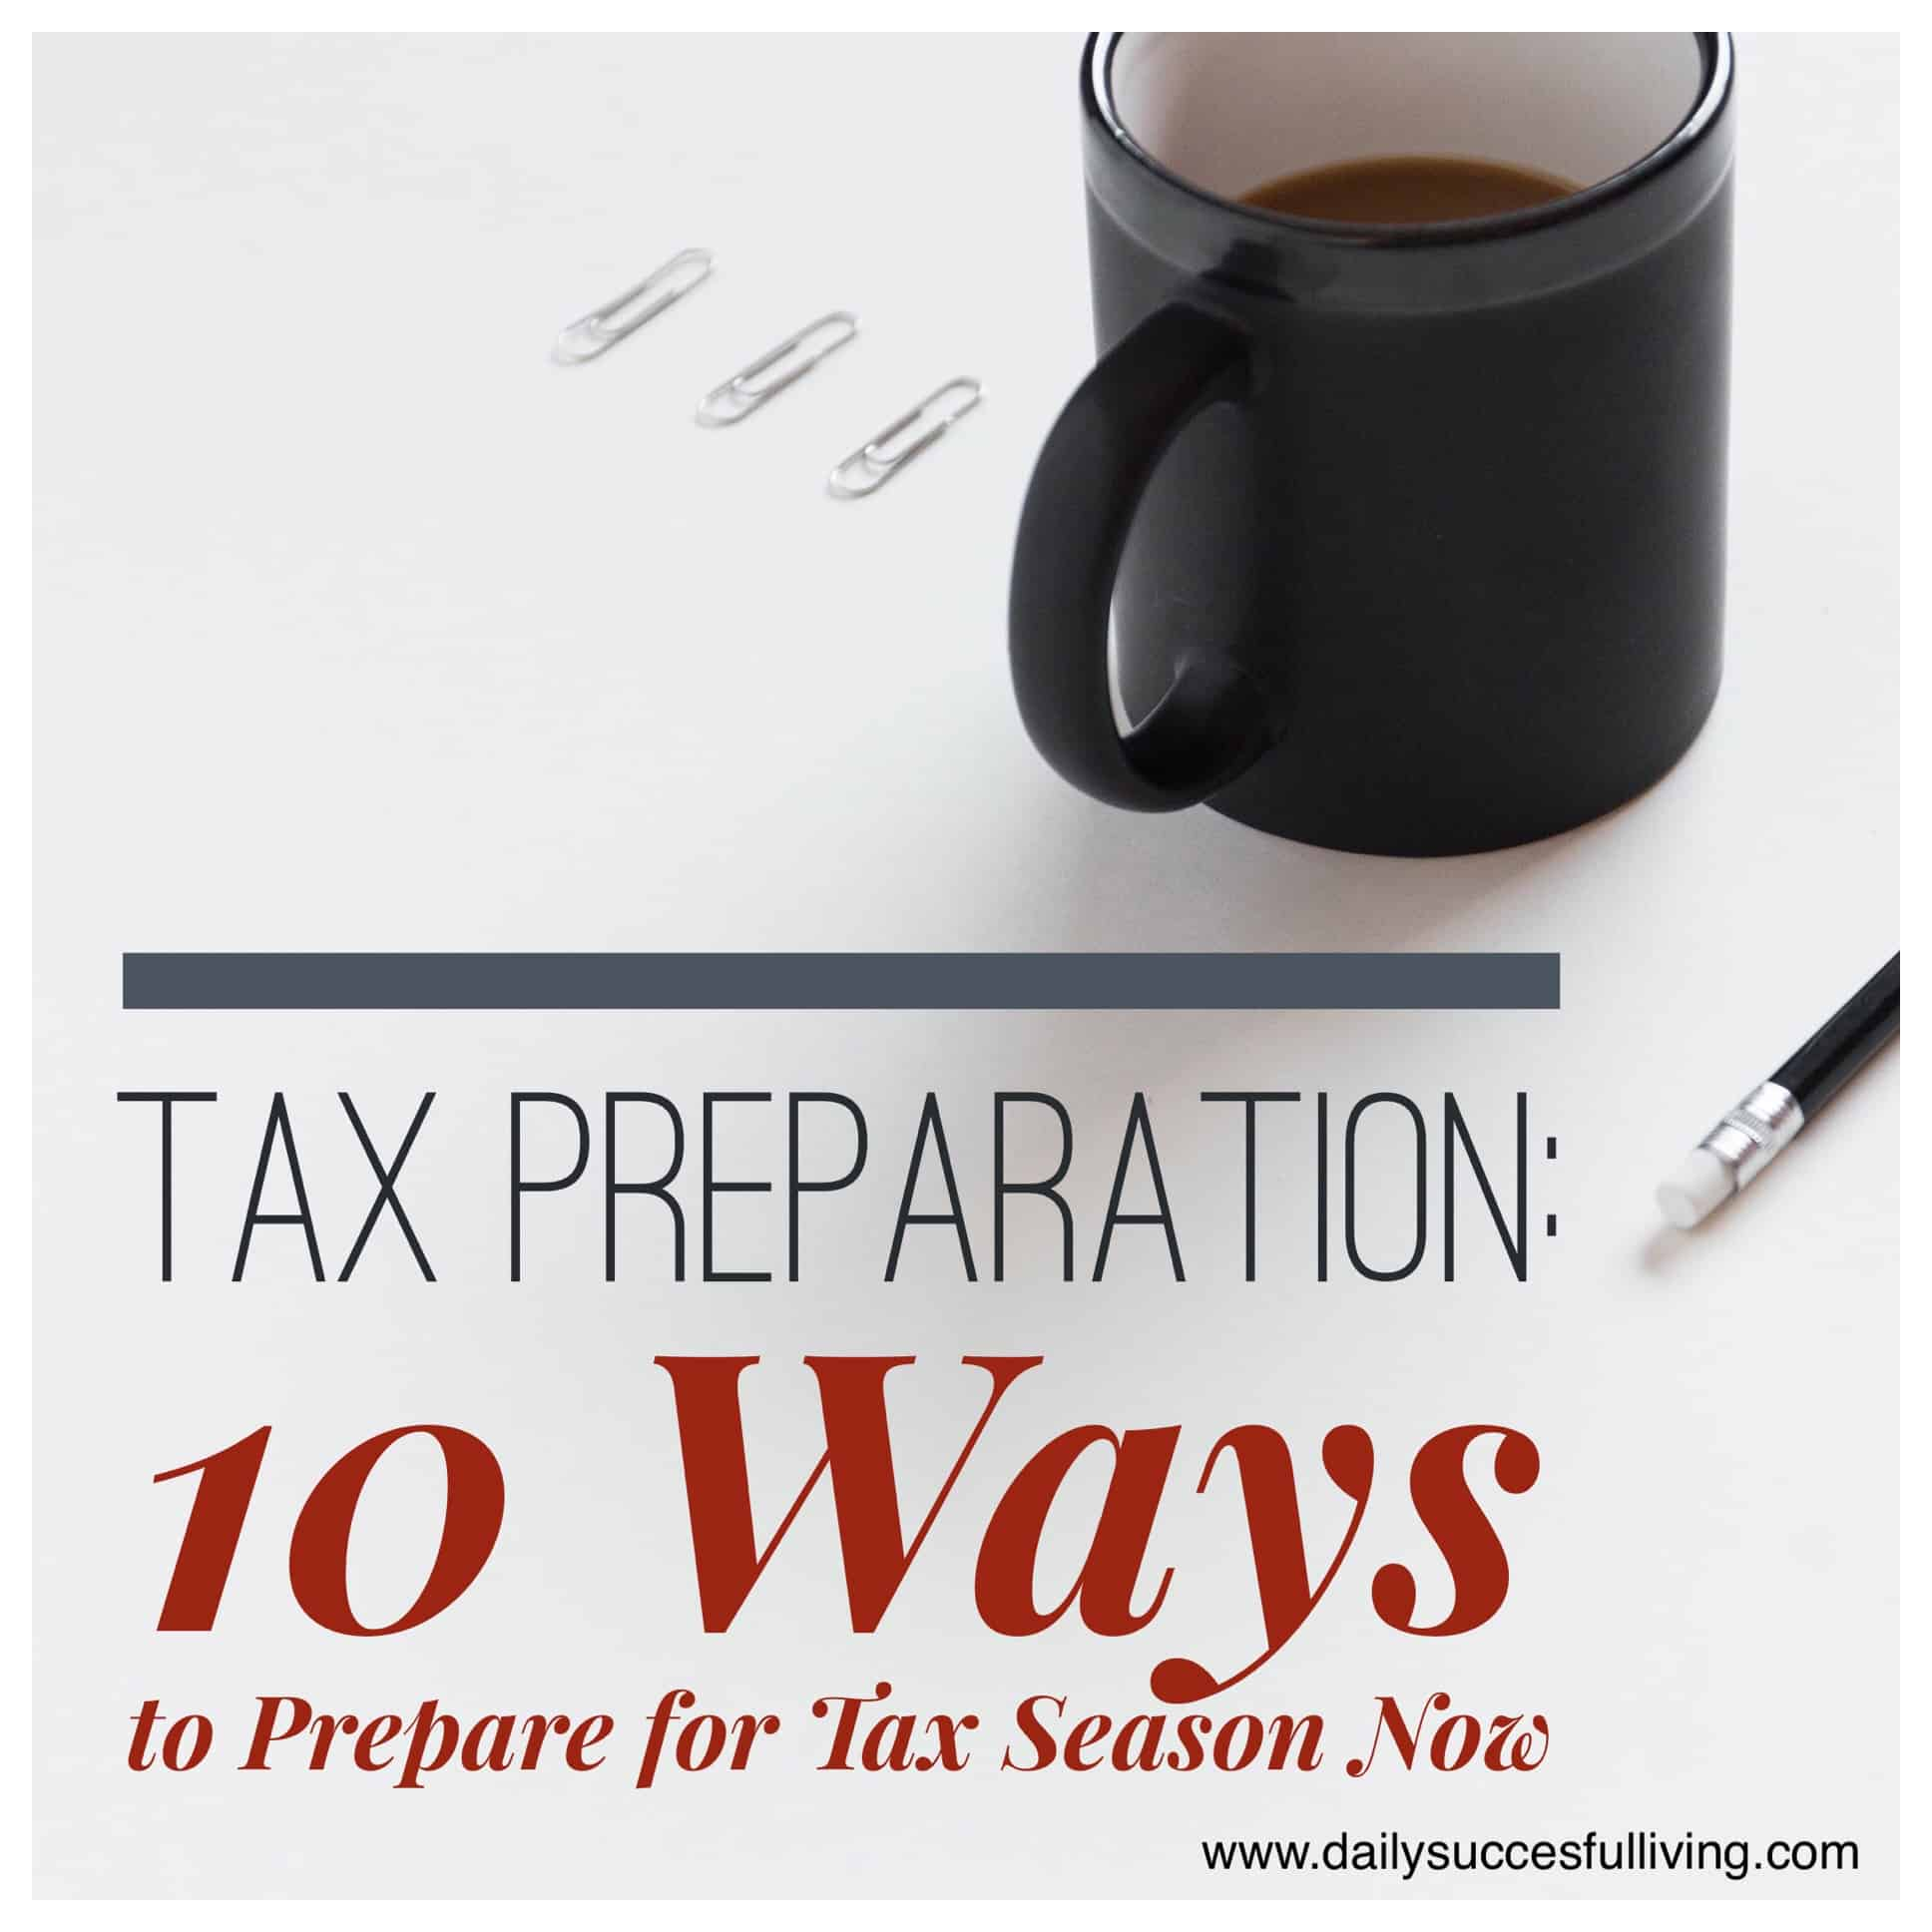 Tax Preparation: 10 Ways To Organize for Taxes